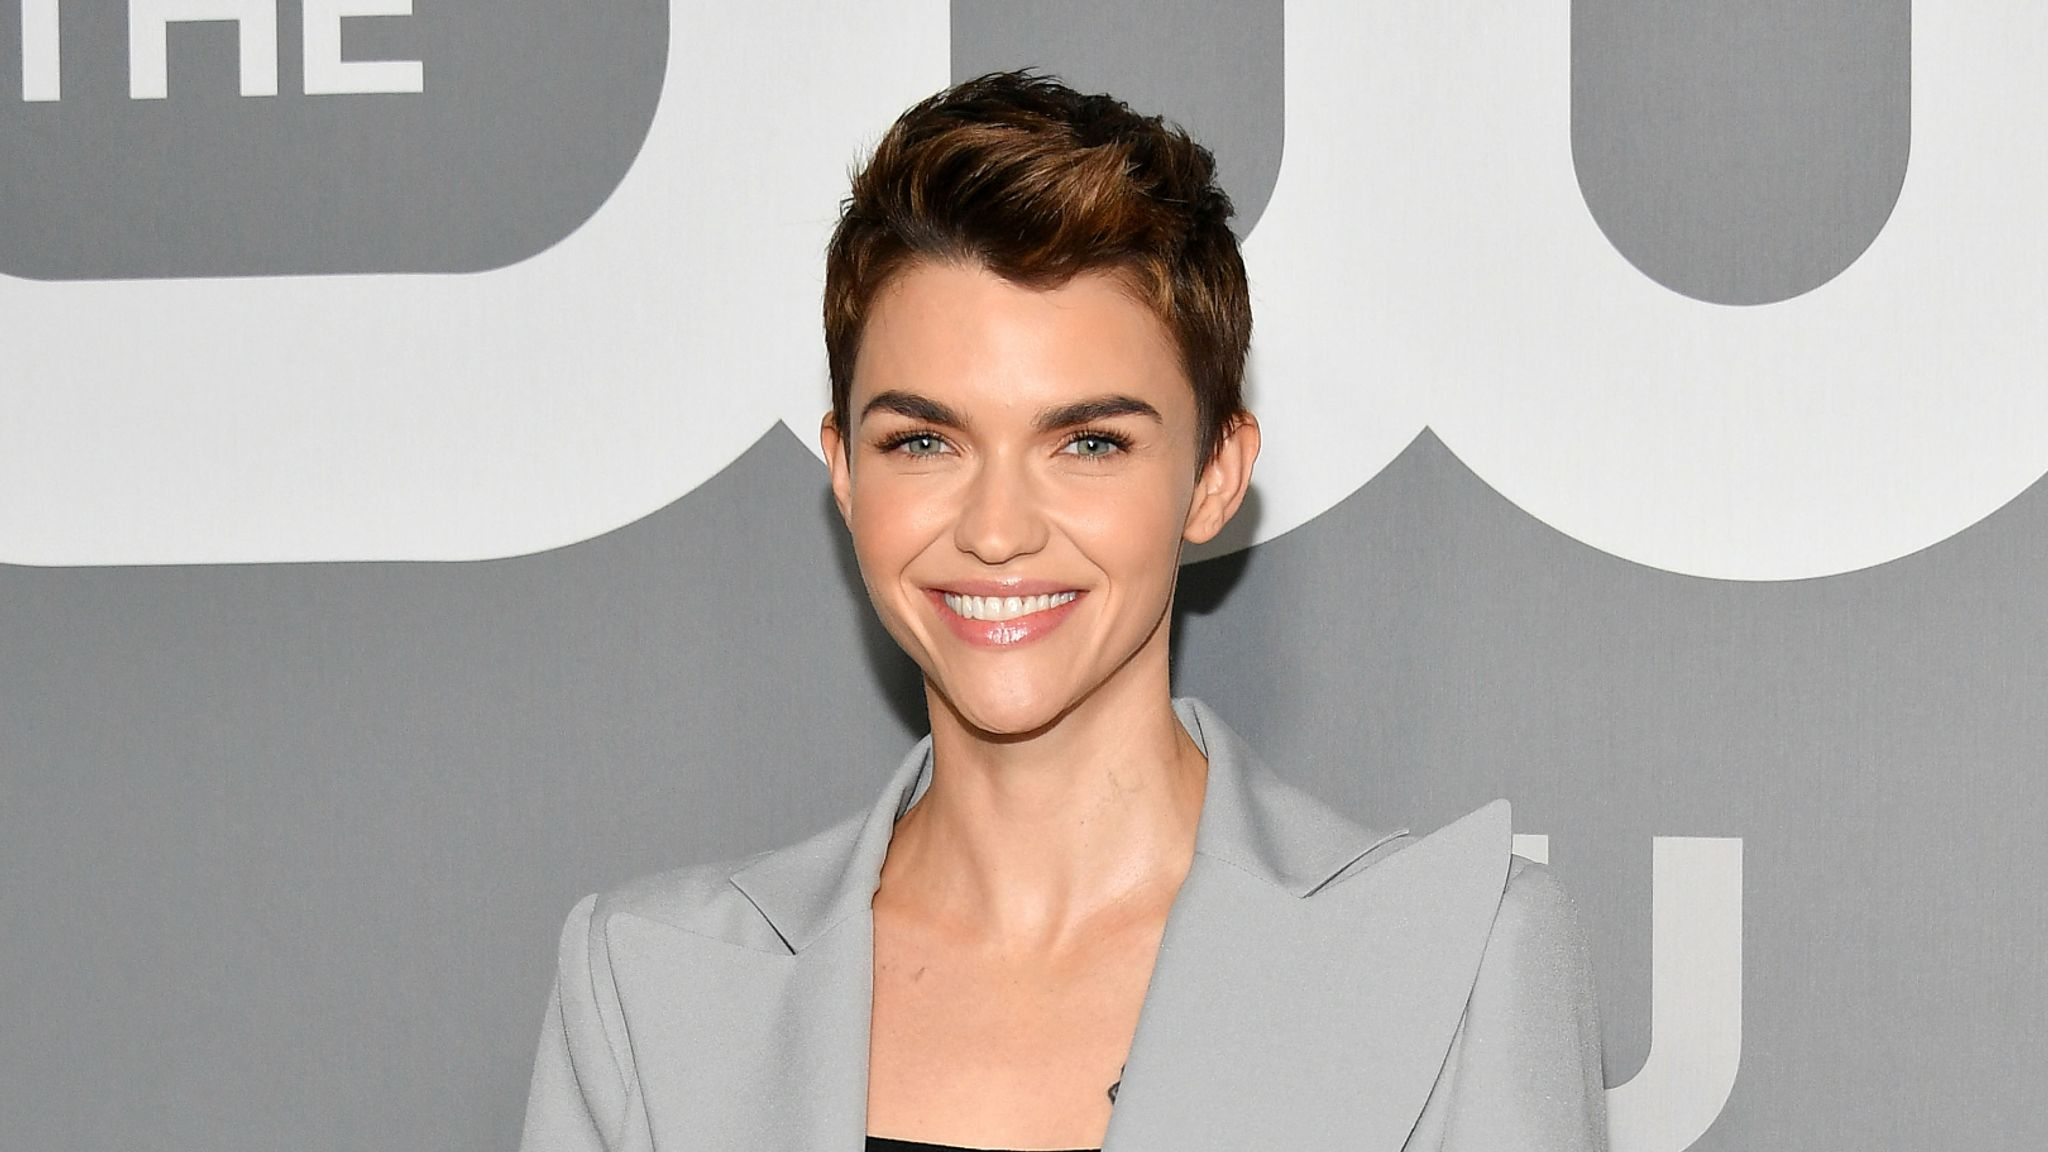 NEW YORK, NEW YORK - MAY 16: Ruby Rose attends the 2019 CW Network Upfront at New York City Center on May 16, 2019 in New York City. (Photo by Dia Dipasupil/Getty Images)